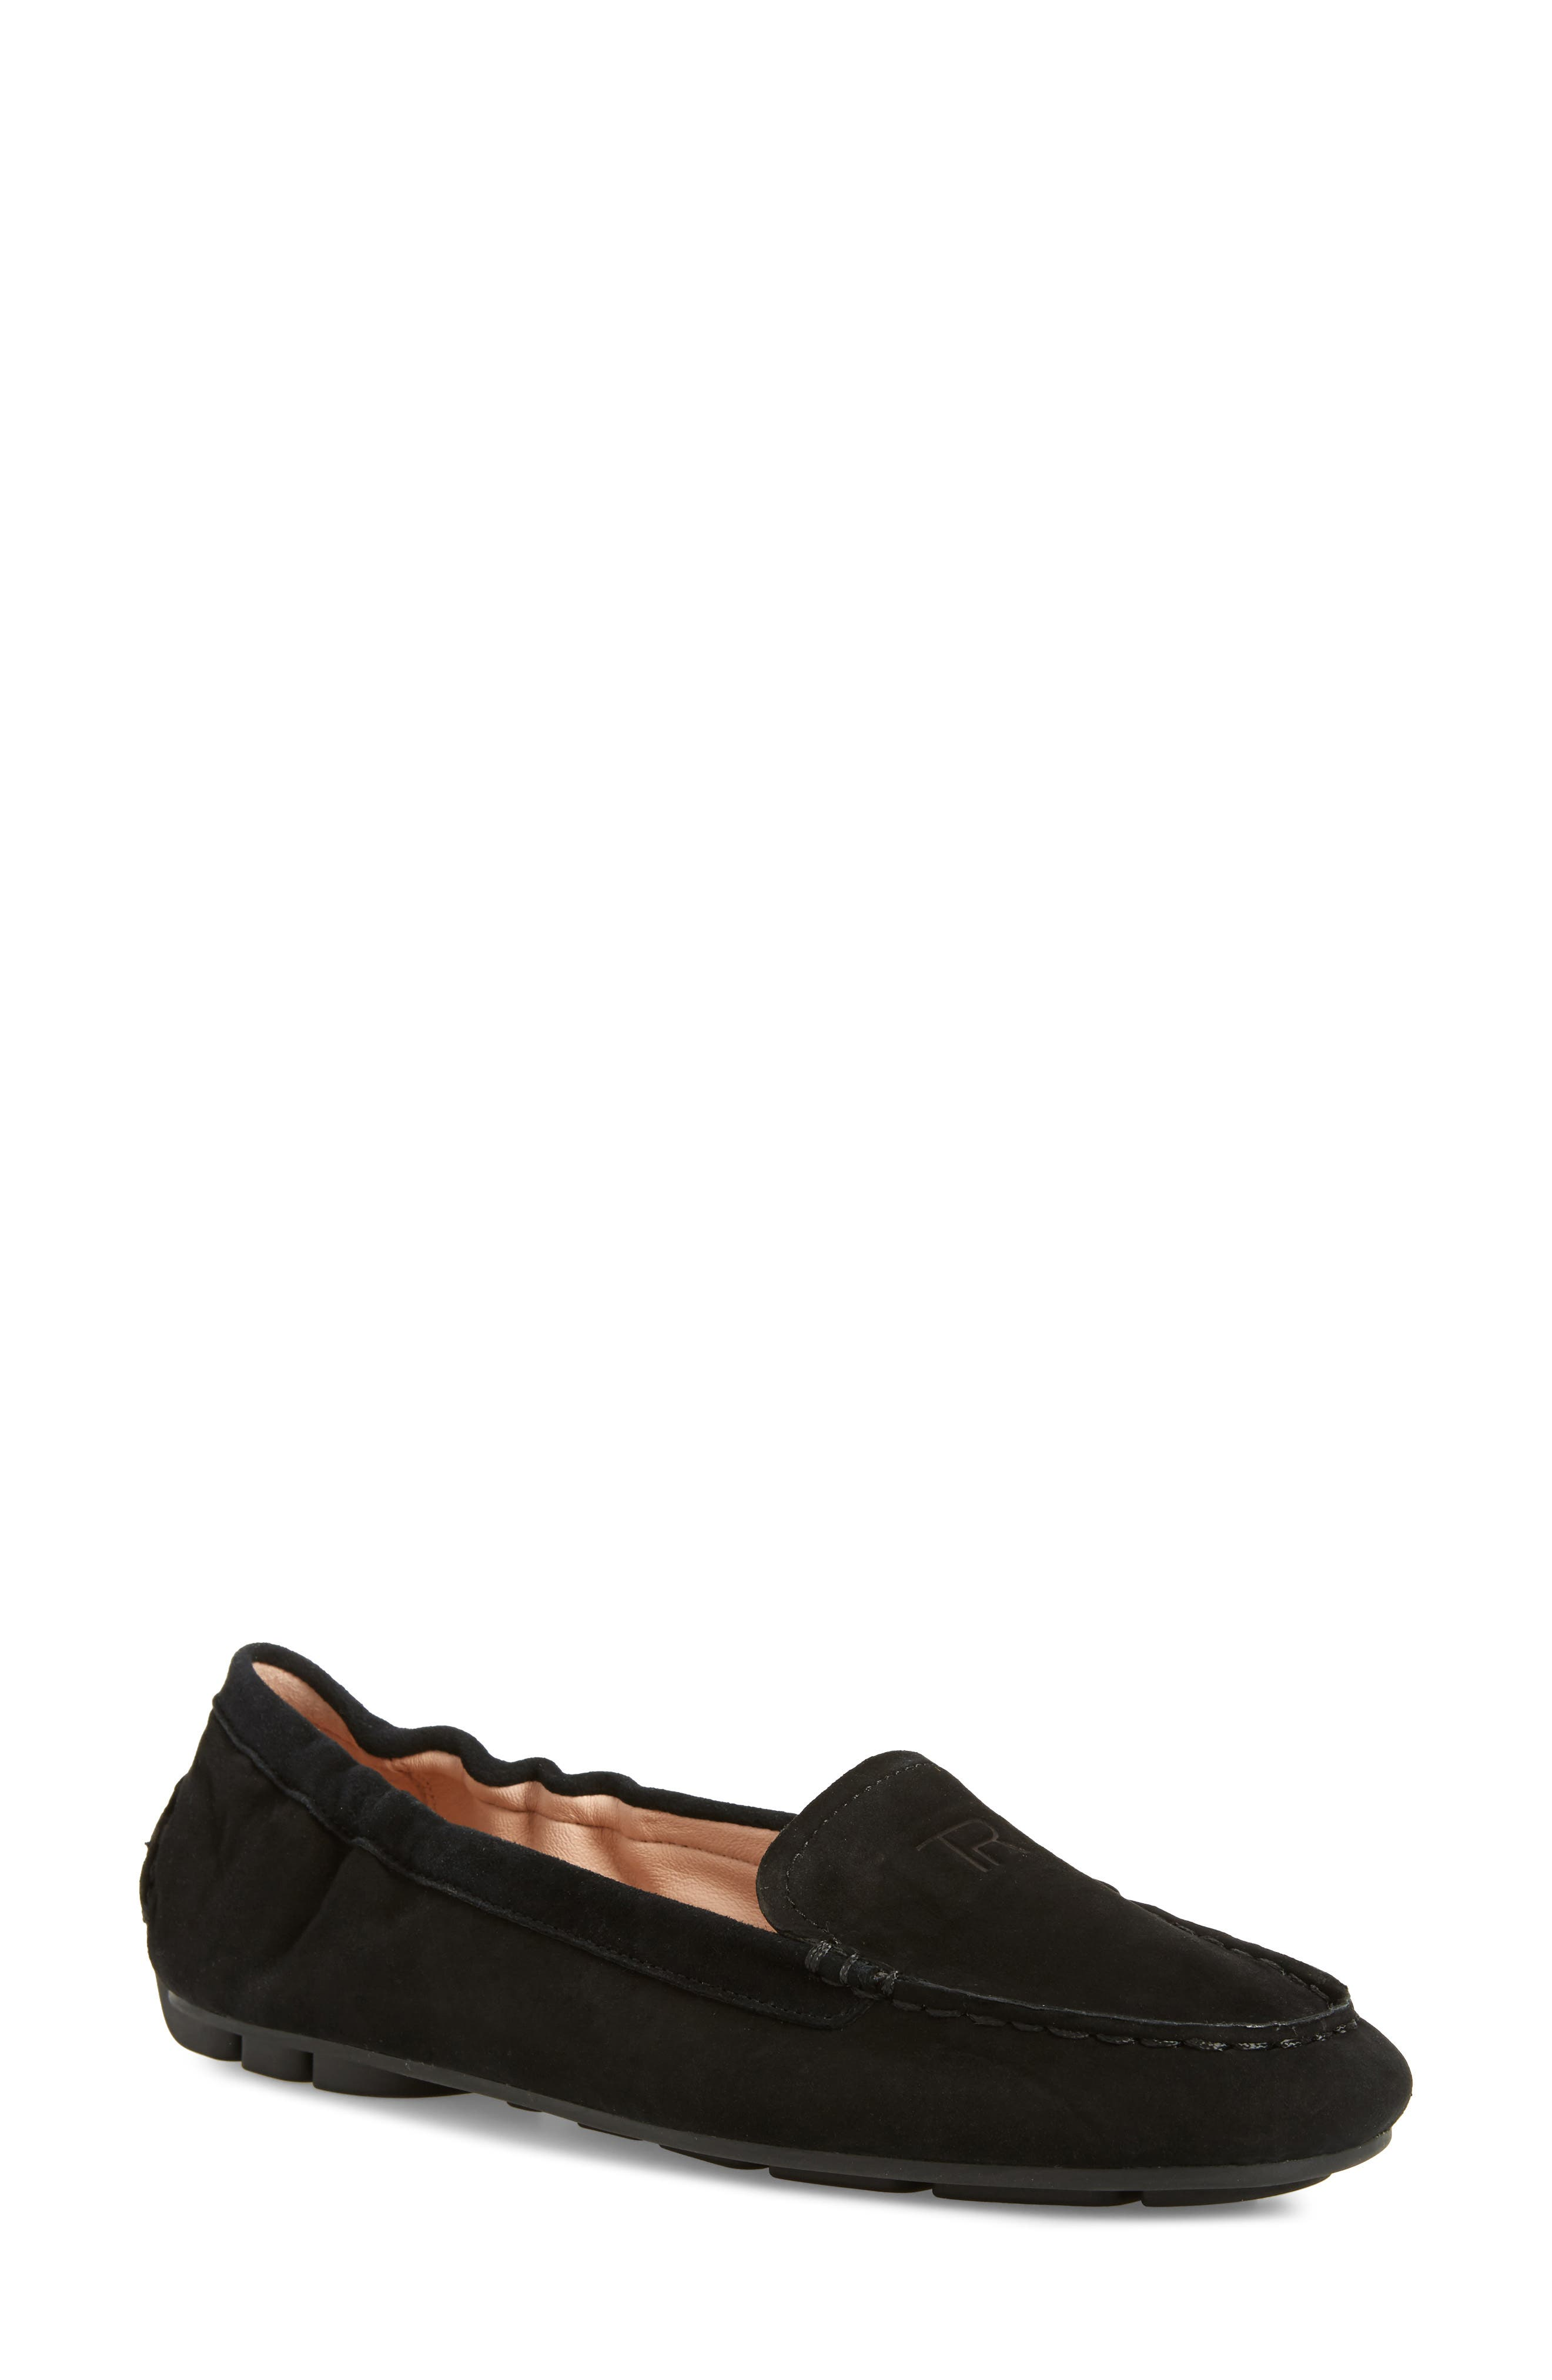 TARYN ROSE,                             Kristine Loafer,                             Main thumbnail 1, color,                             BLACK SUEDE